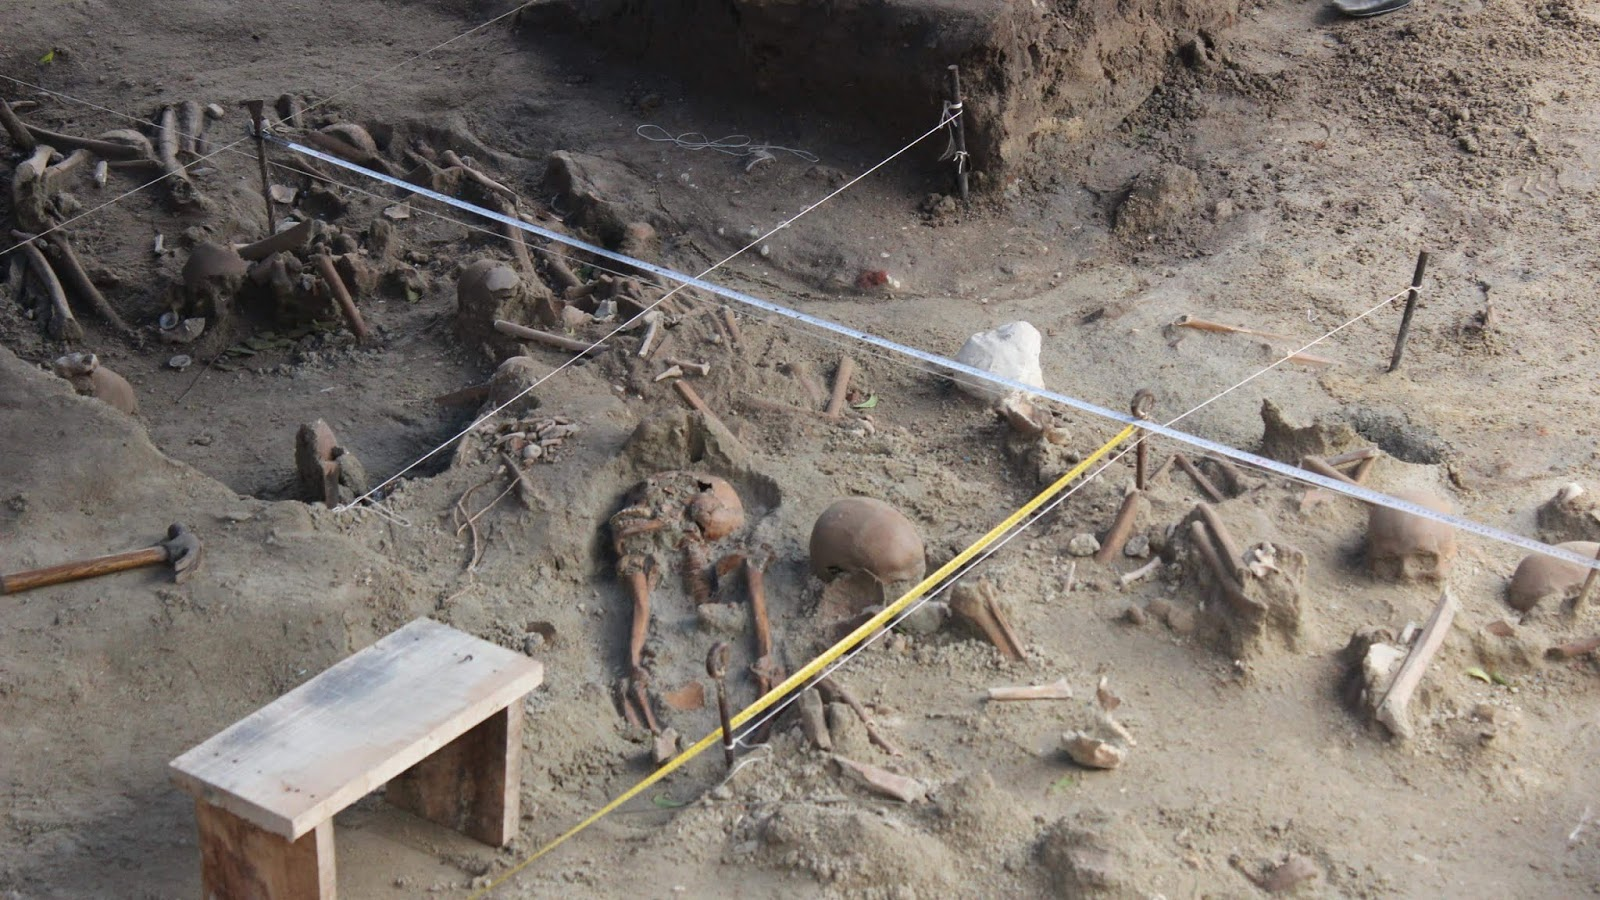 Carbon Dating says Mannar Mass Grave skeletons belong to years 1499 and 1719 AD